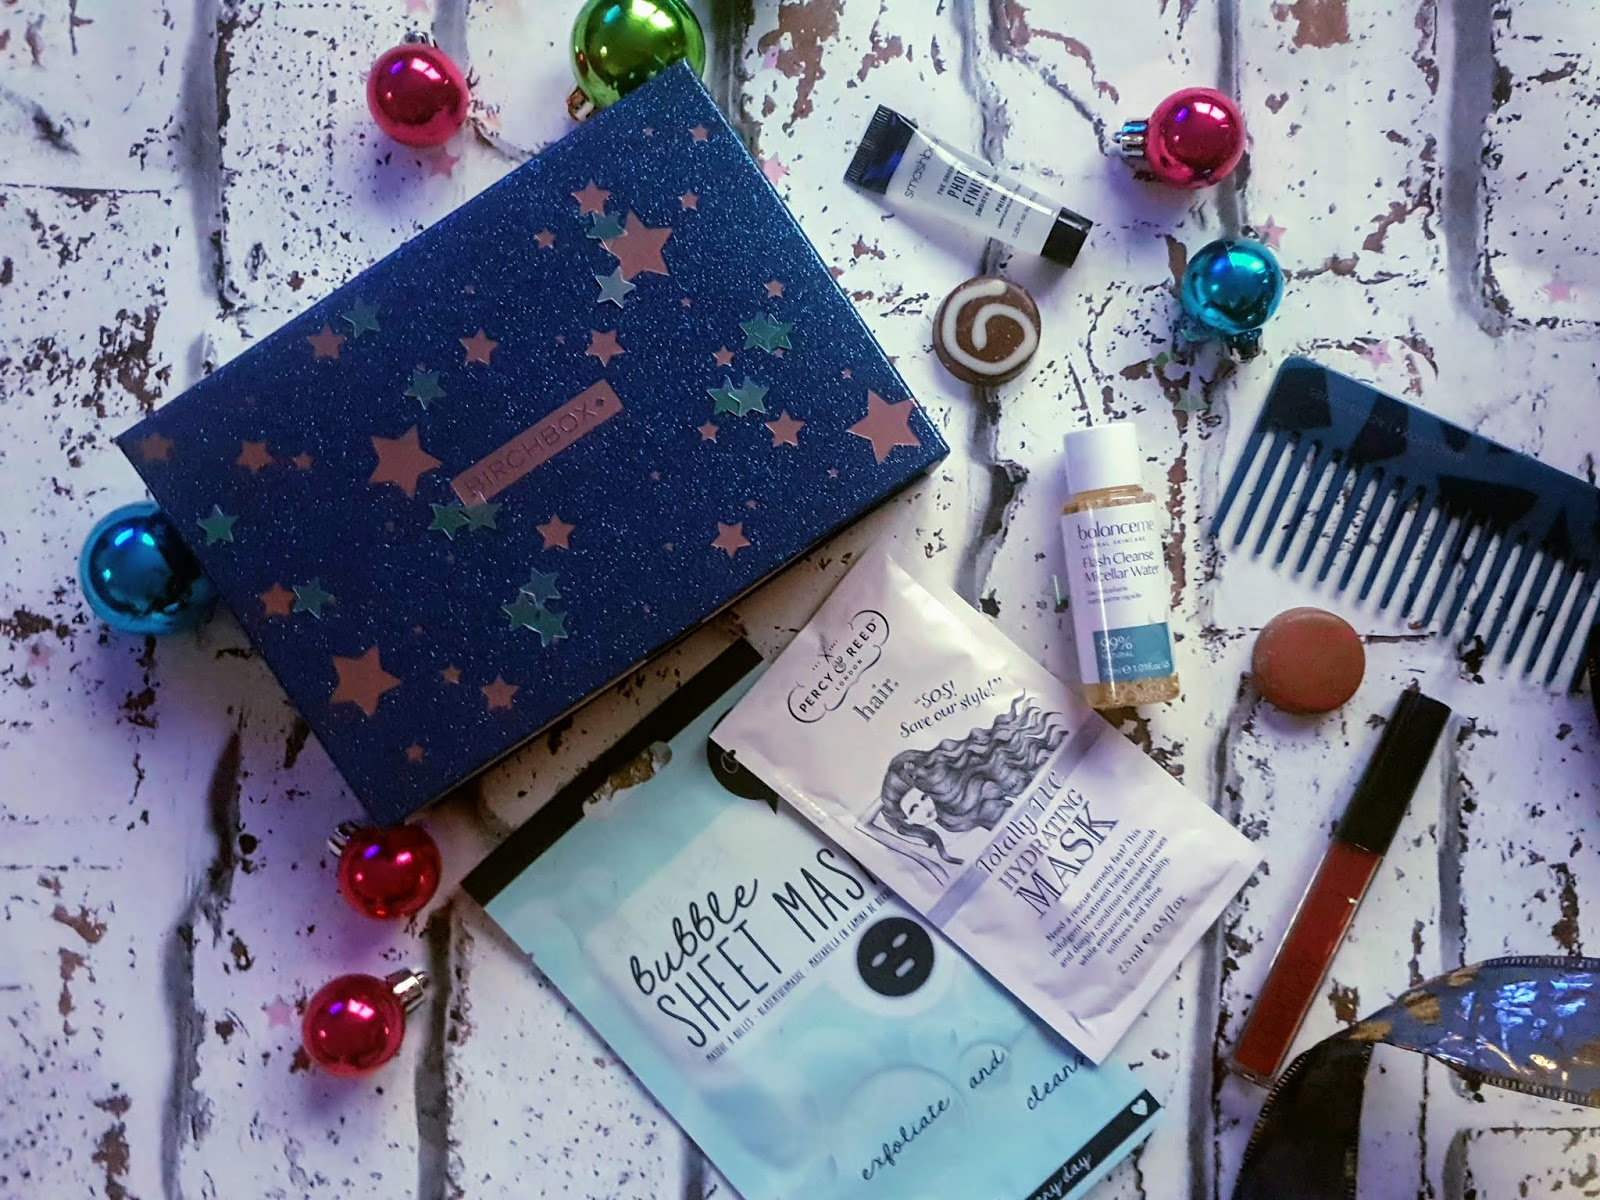 Birchbox December 2018 review